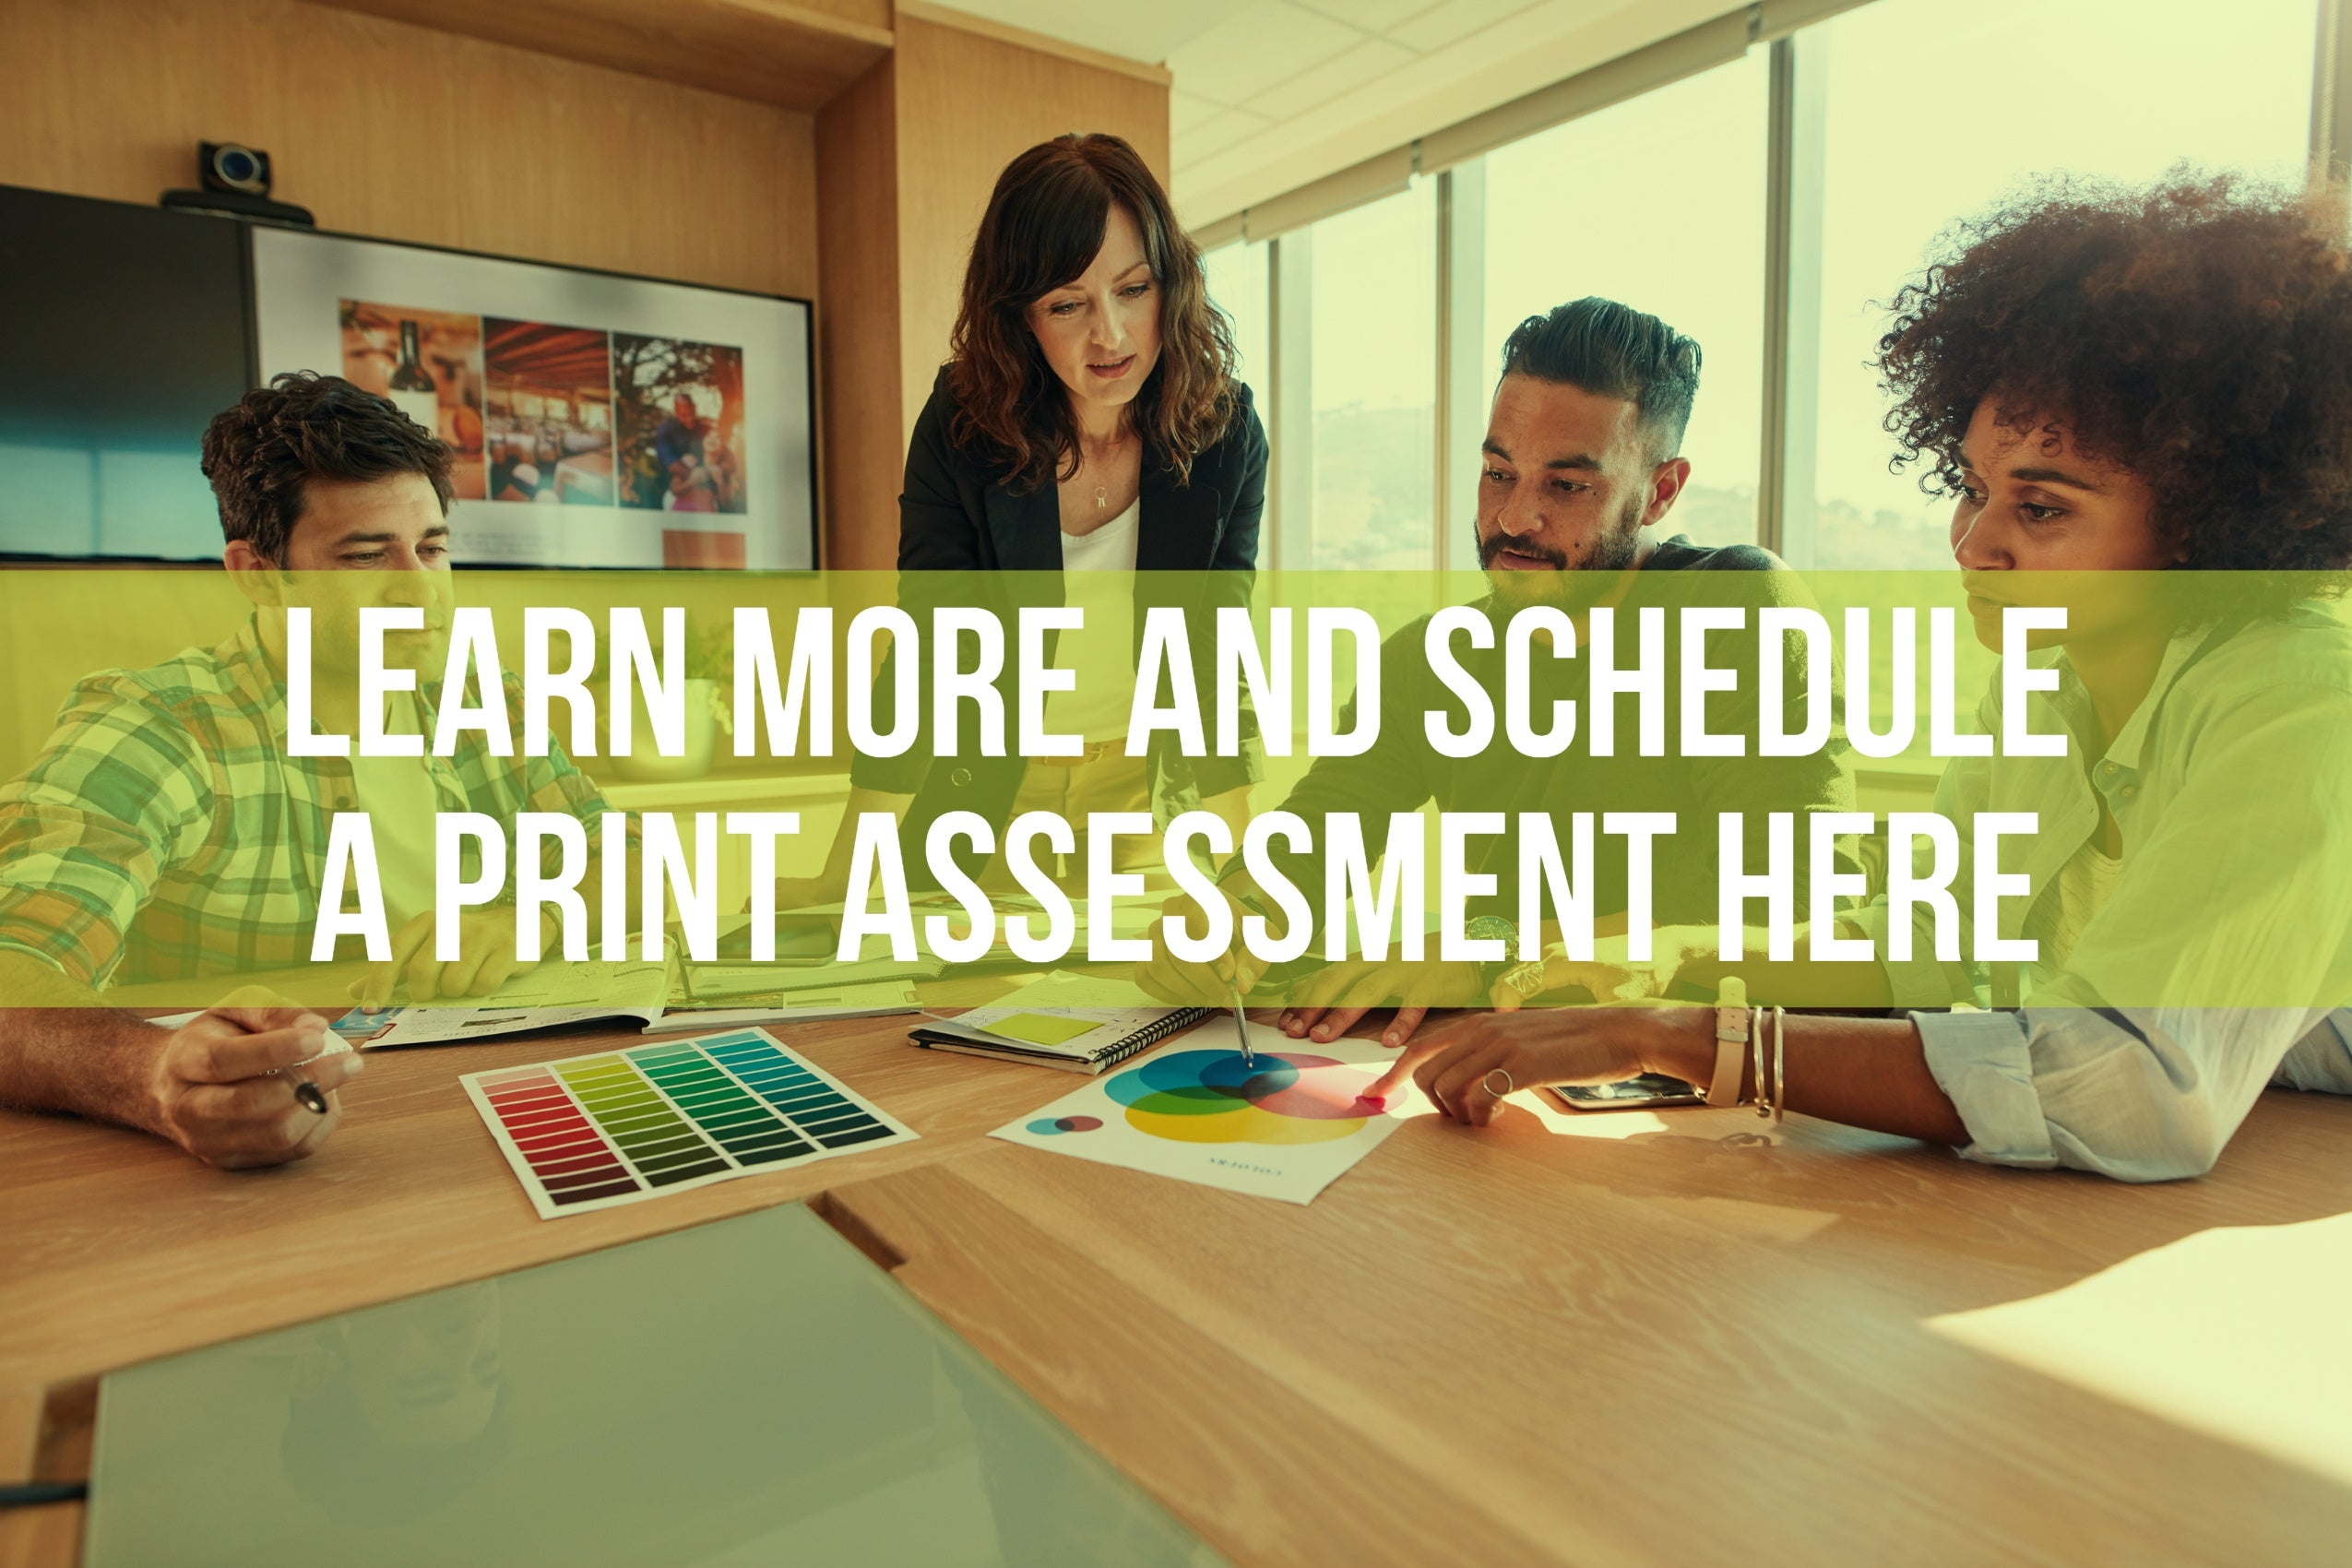 Link to schedule a print assessment with Lasers Resource